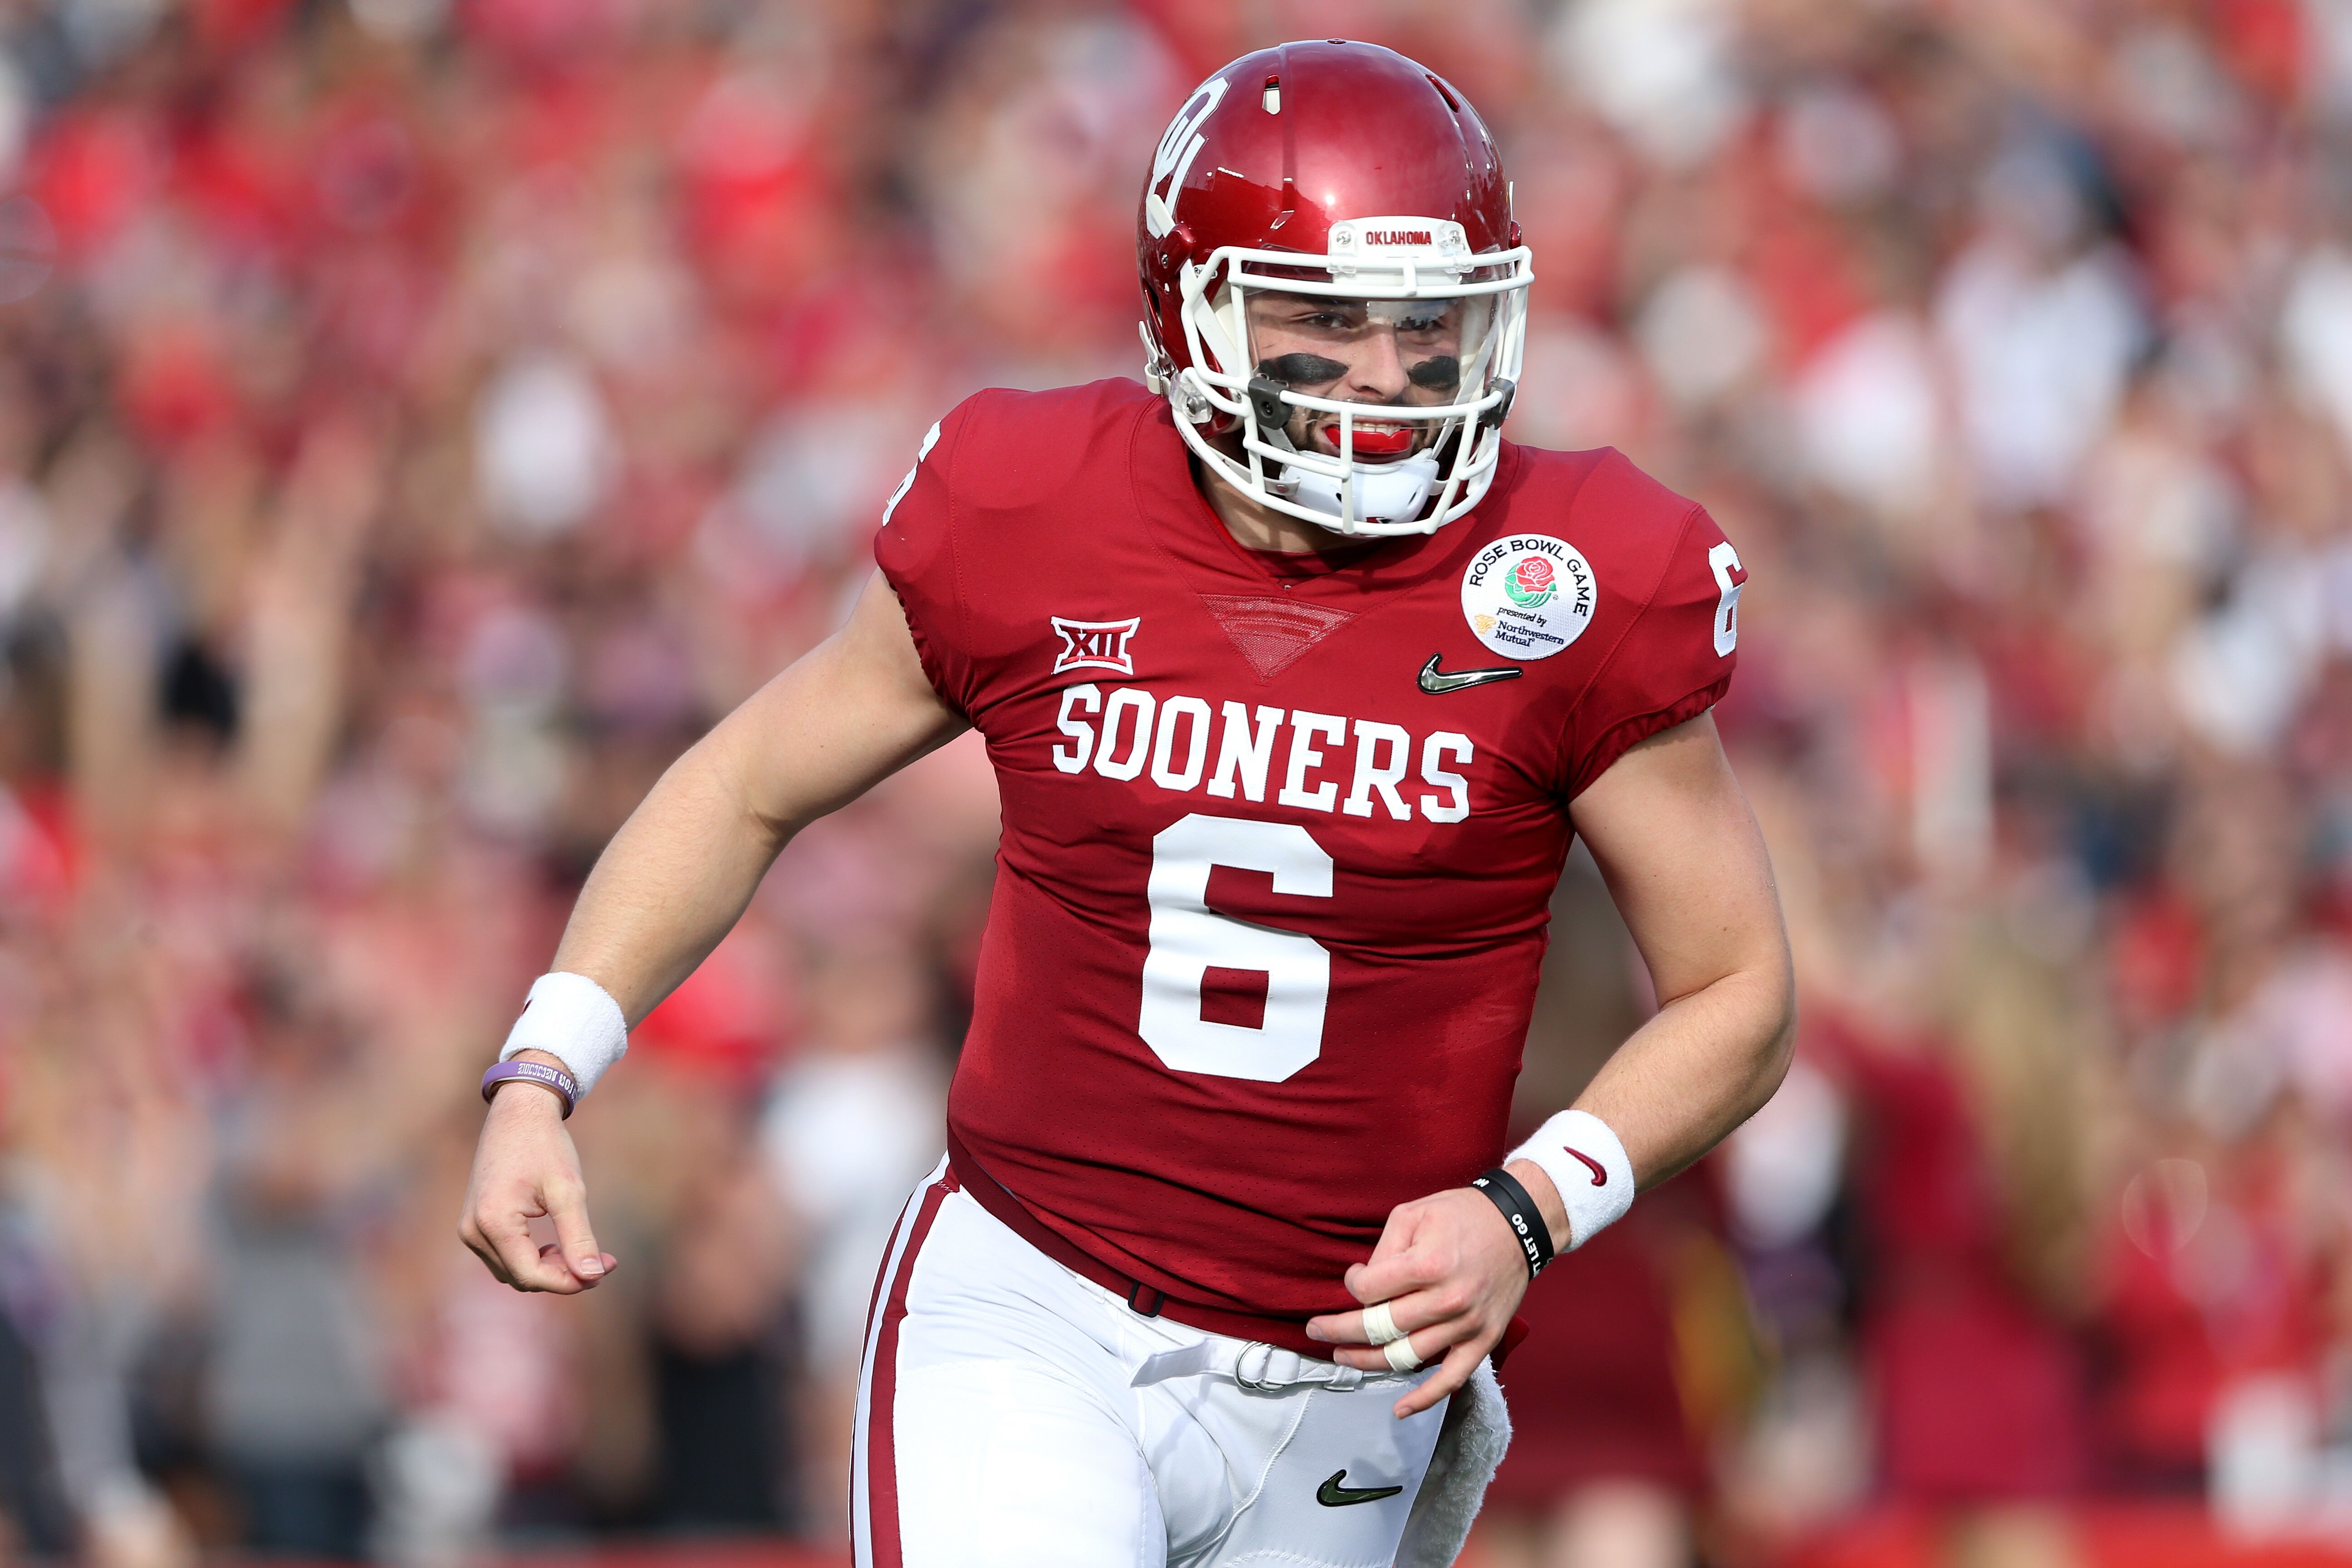 a91697f39 Baker Mayfield interview  From Heisman Trophy season to 2018 NFL Draft